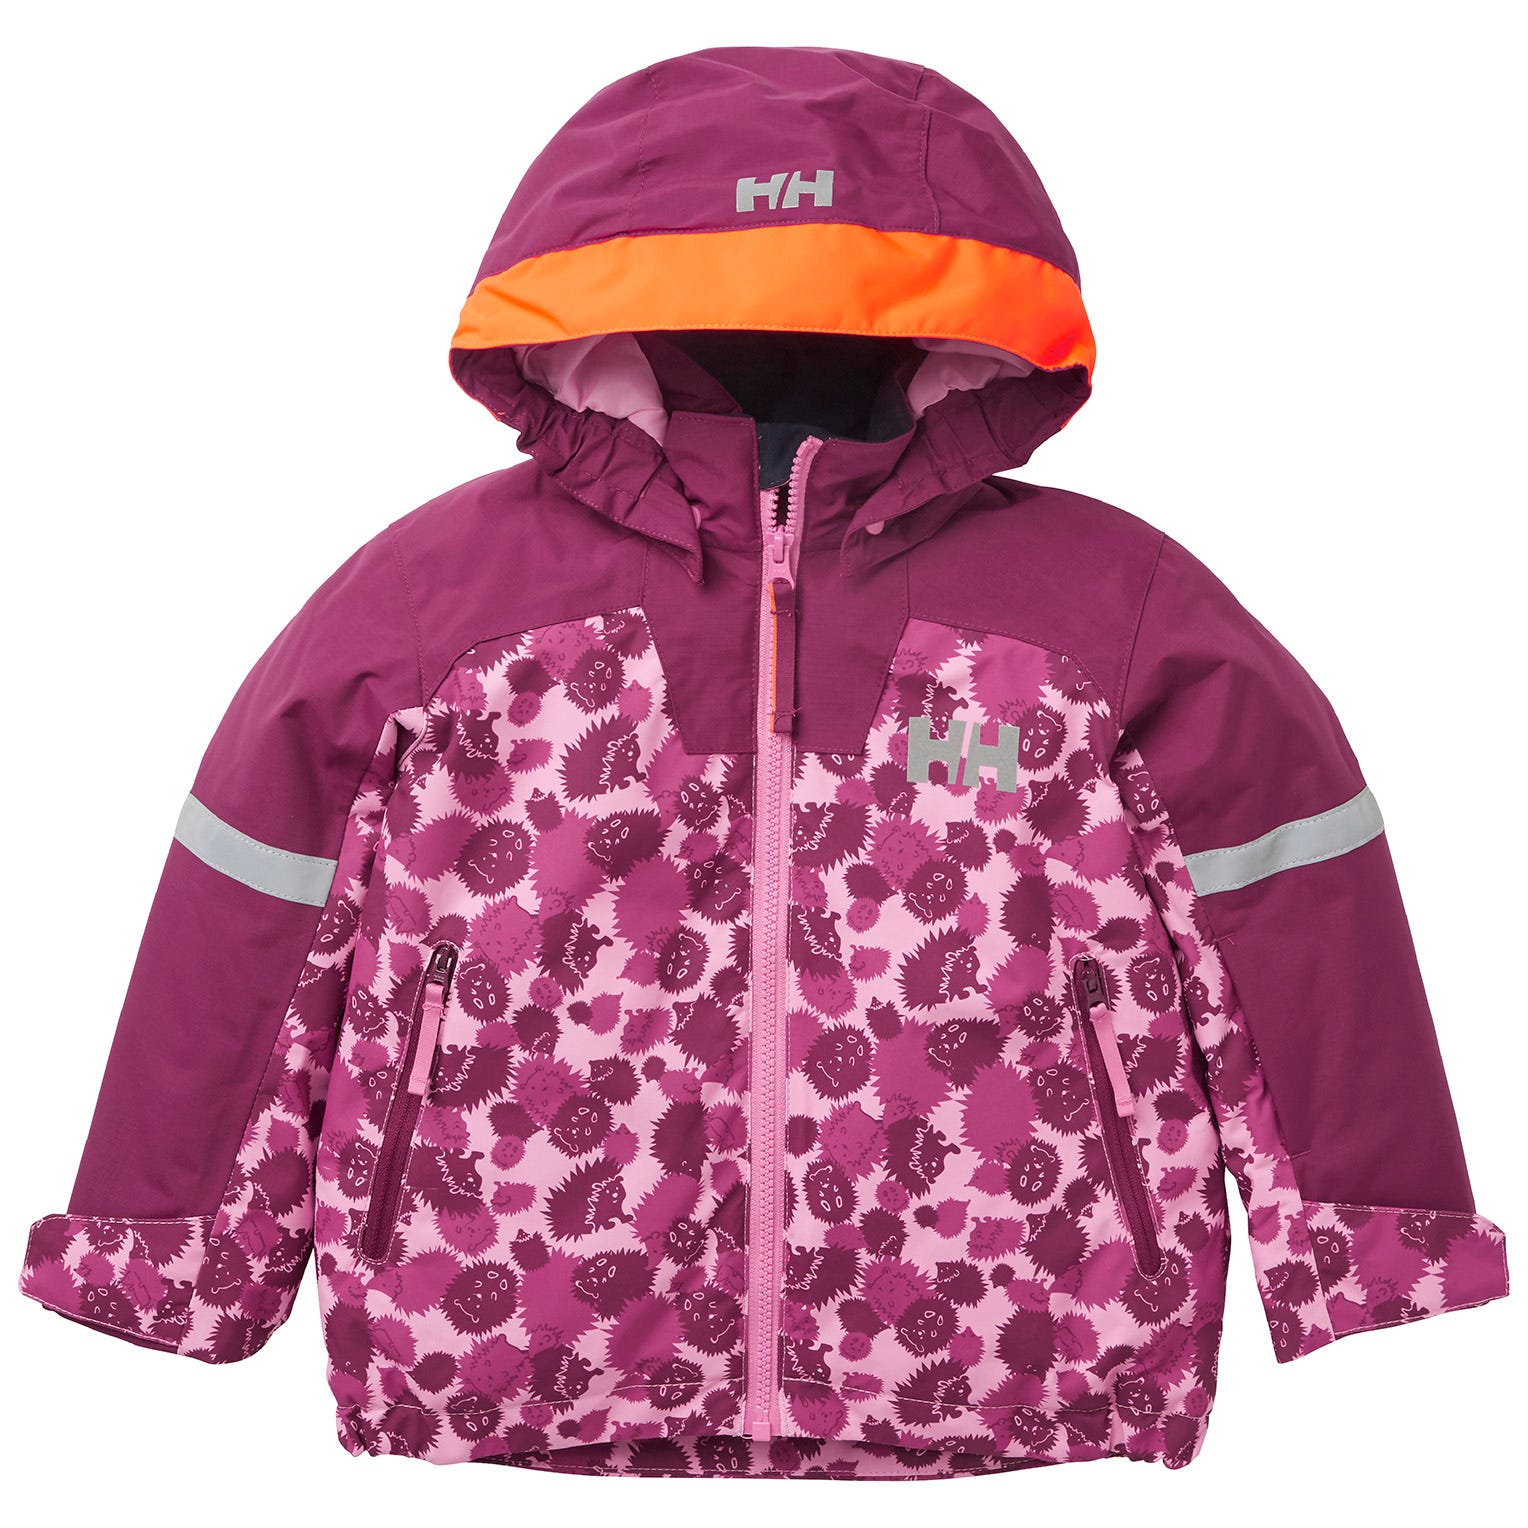 Helly-Hansen Kids /& Baby Legend Waterproof Breathable Fully Insulated Ski Jacket